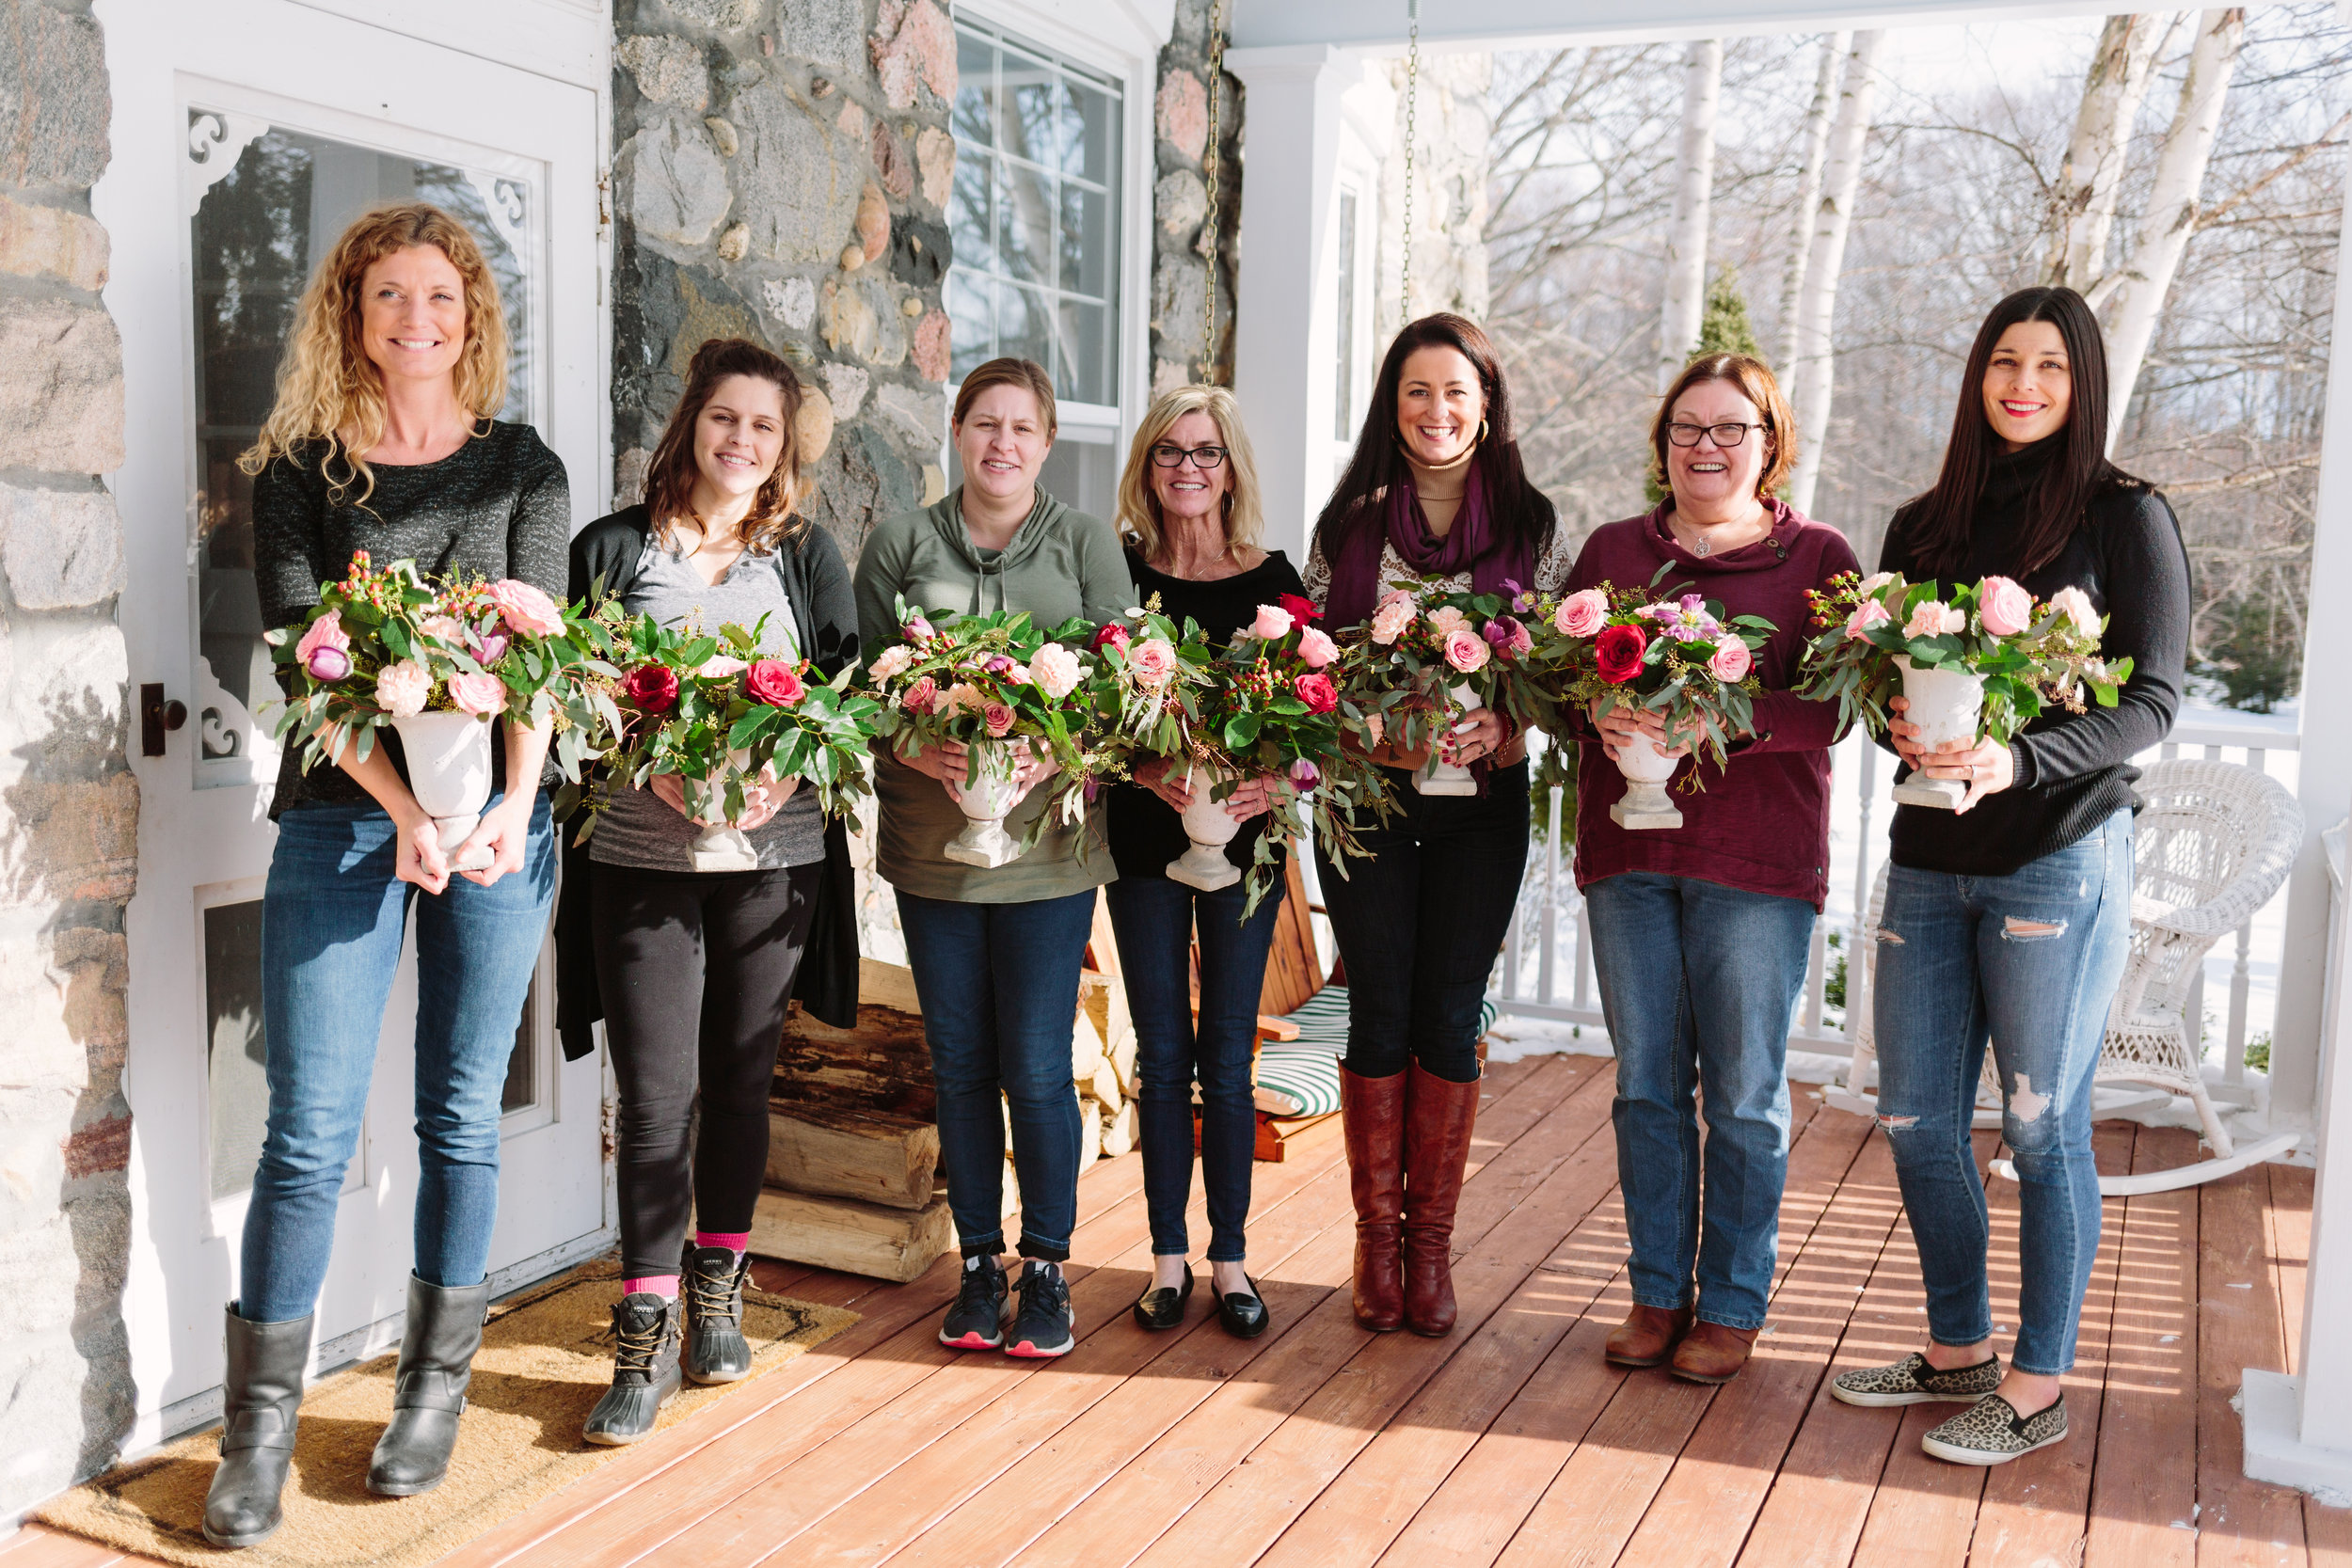 Our amazing group from 'An Afternoon With Flowers' workshop!